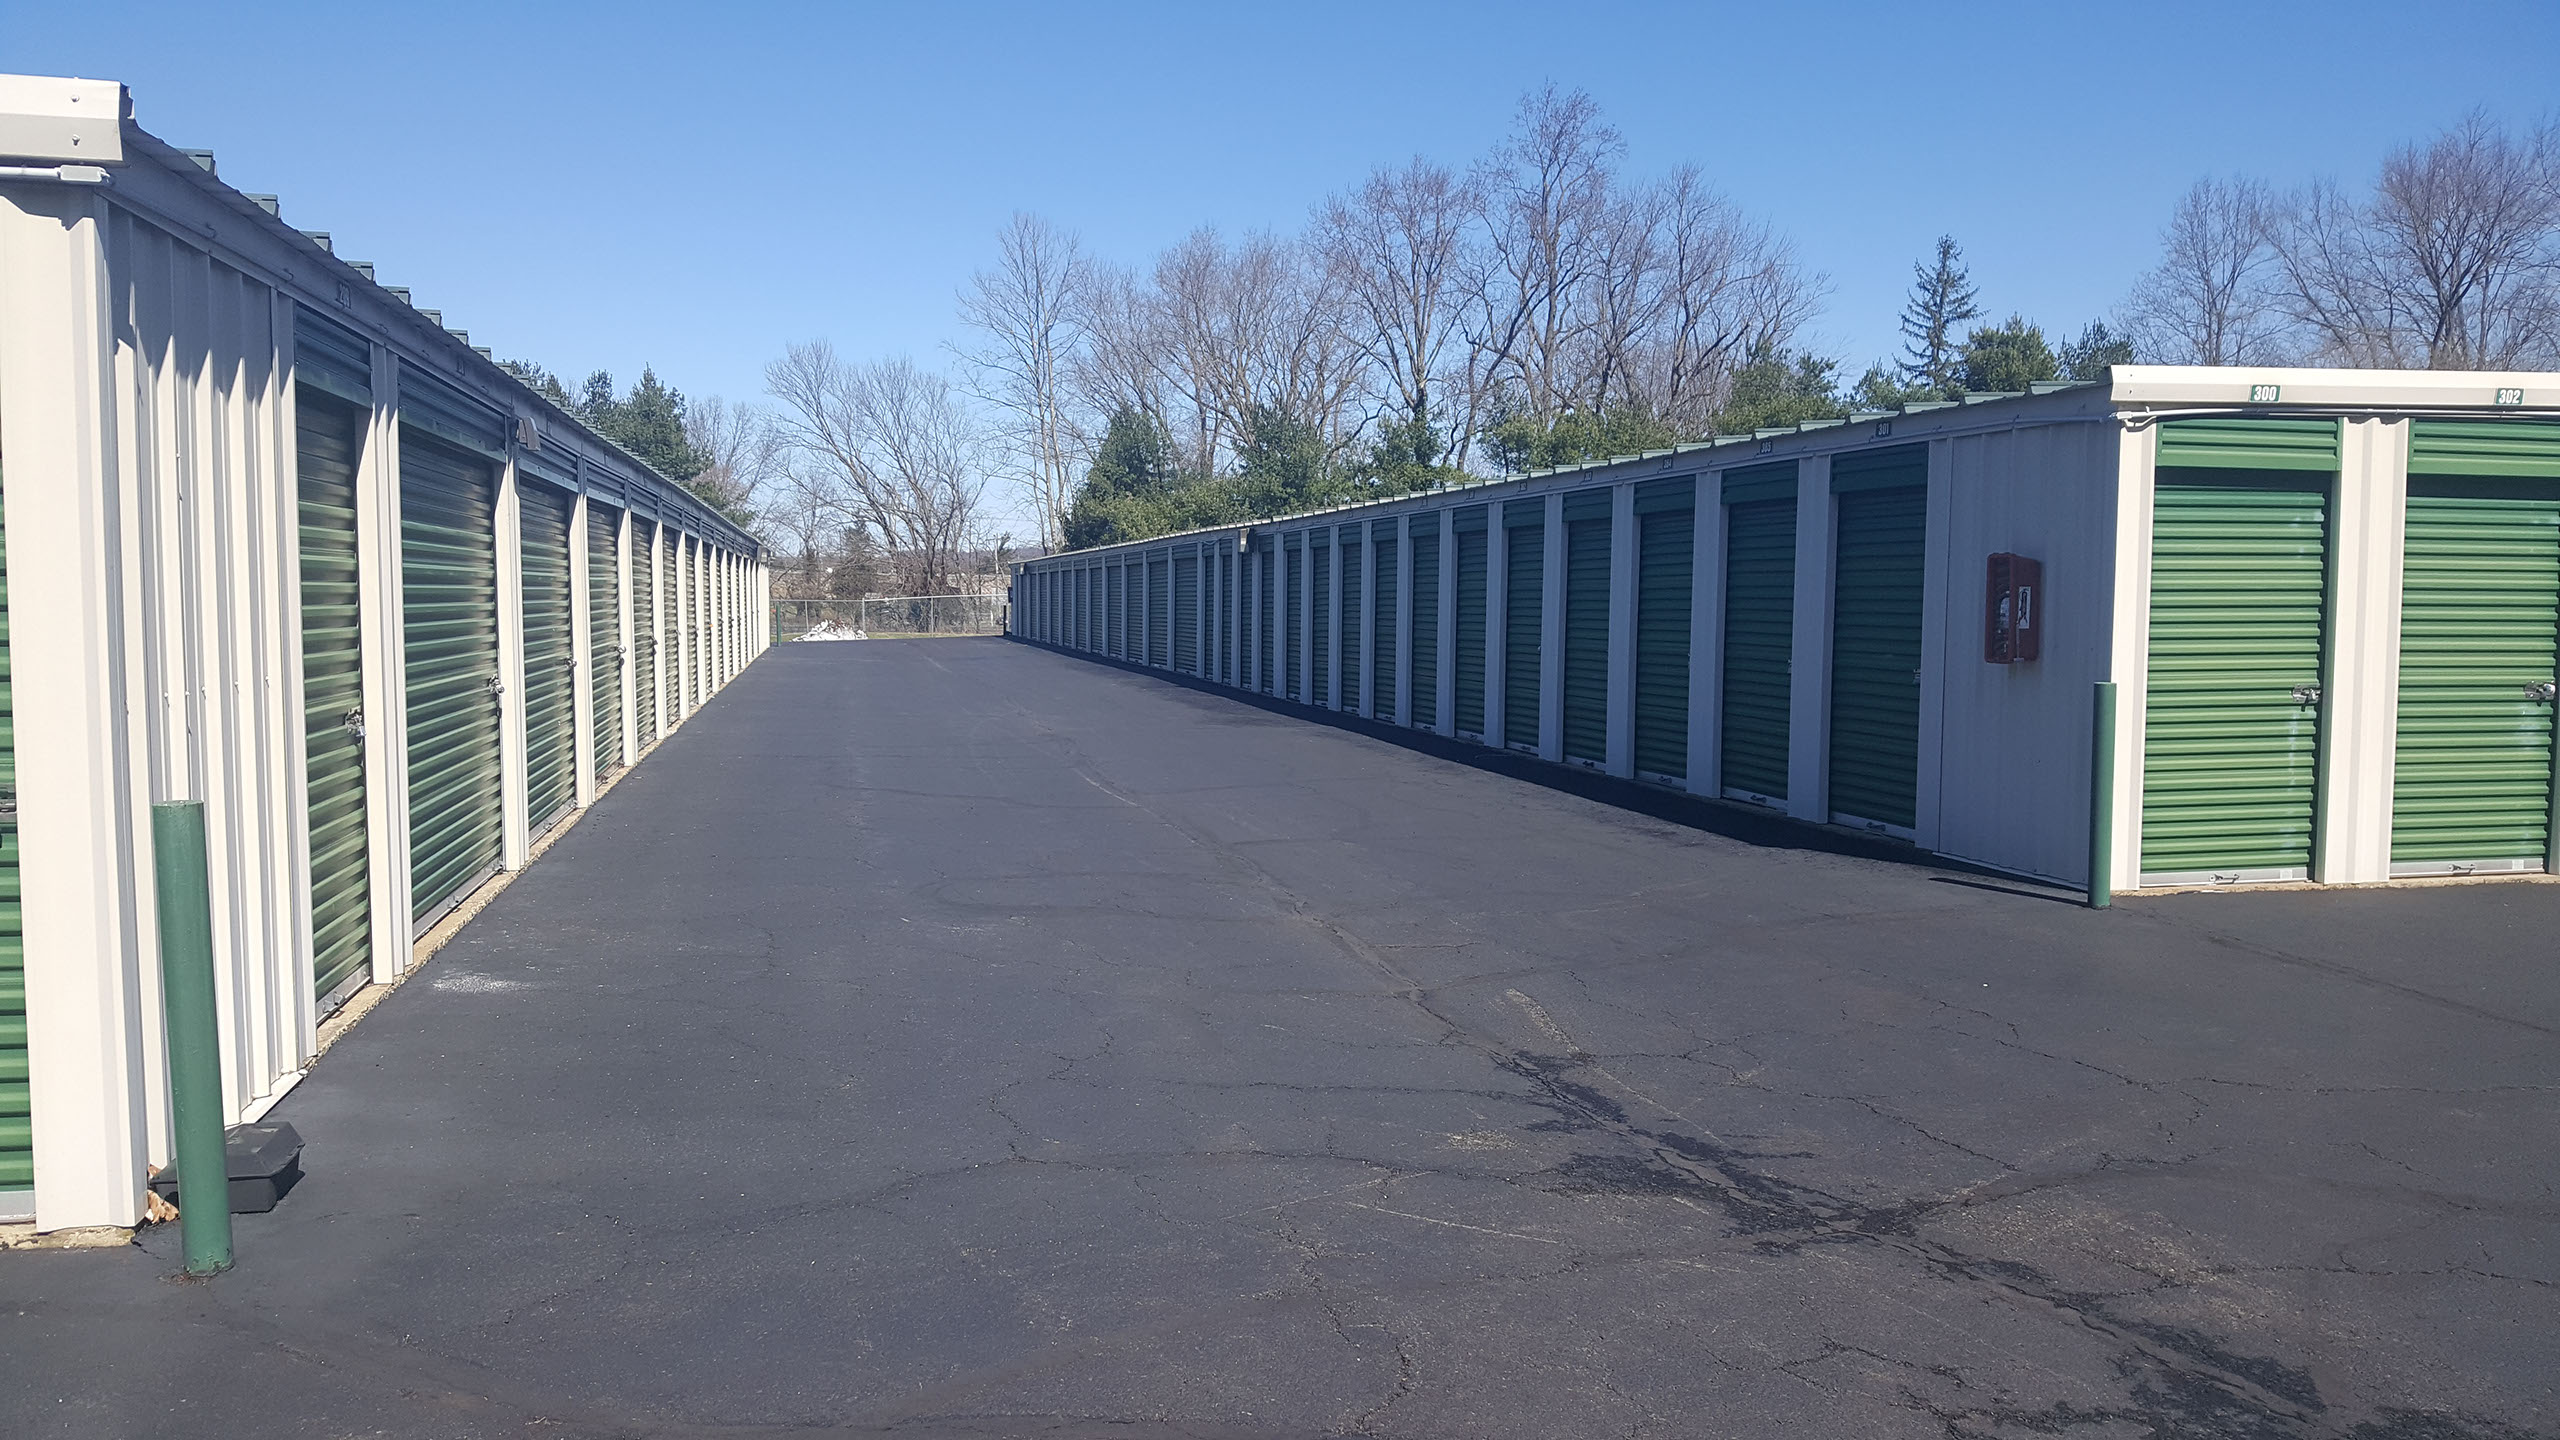 Storage Units Stockton NJ & Storage Units Stockton NJ | Storage Rental Units Stockton NJ ...